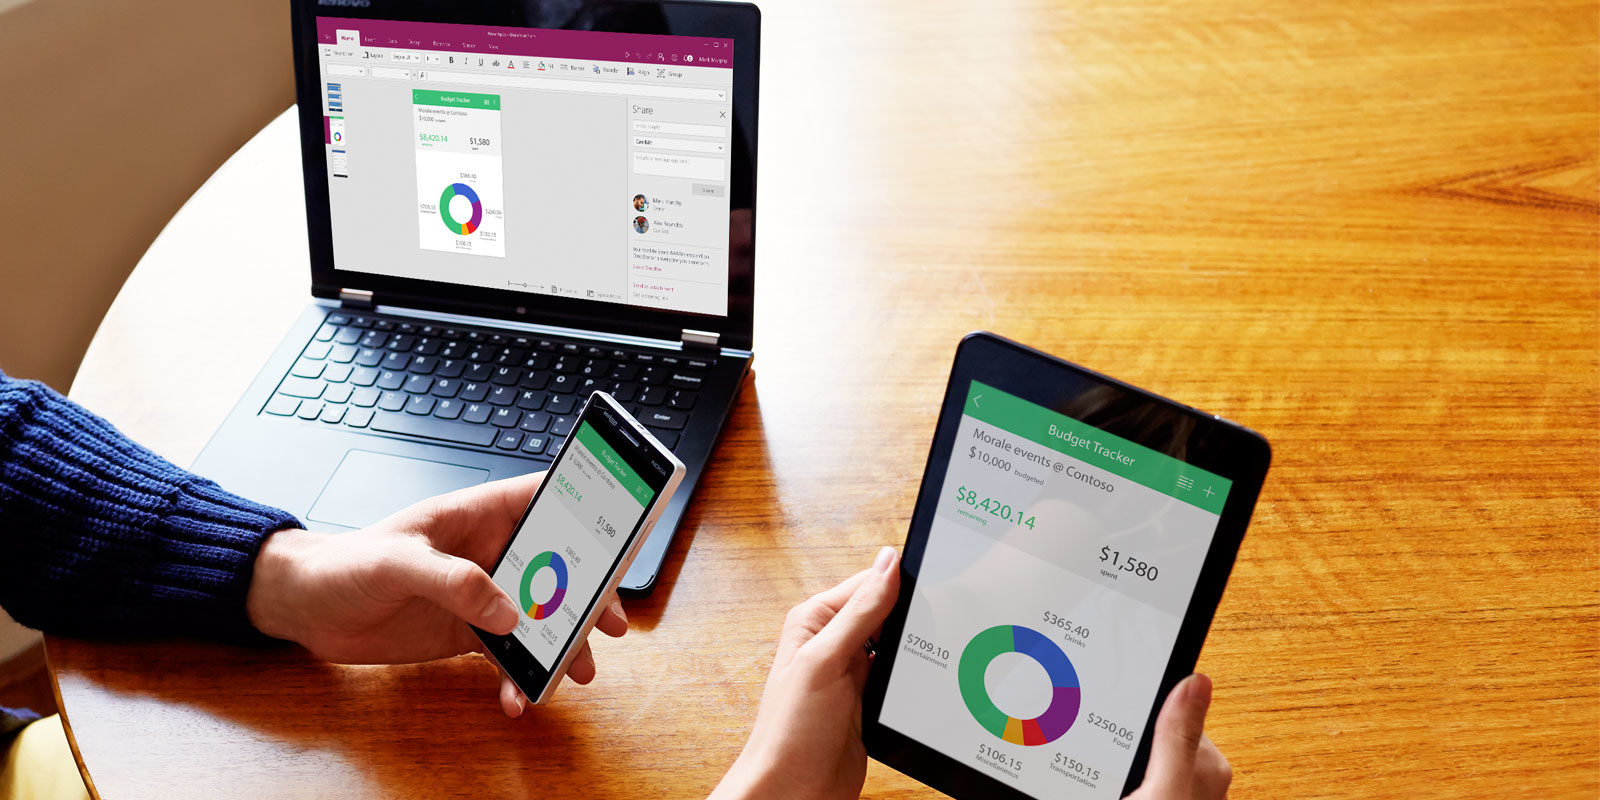 Microsoft PowerApps makes it possible to develop apps with no coding